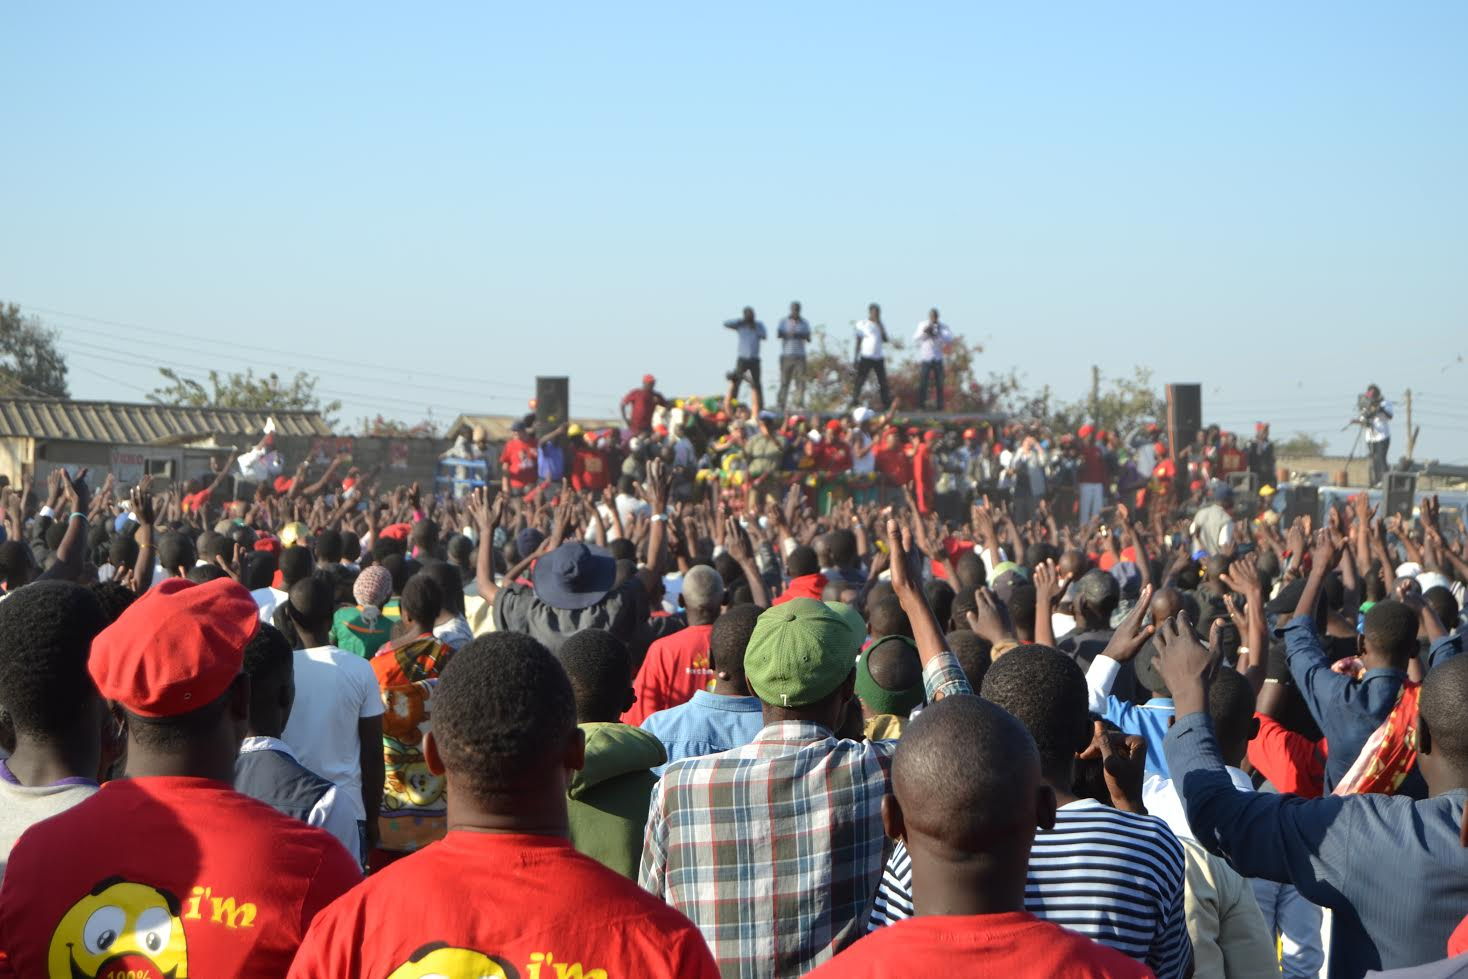 At a UPND rally in Lusaka on 6 August. Credit: Nicole Beardsworth.